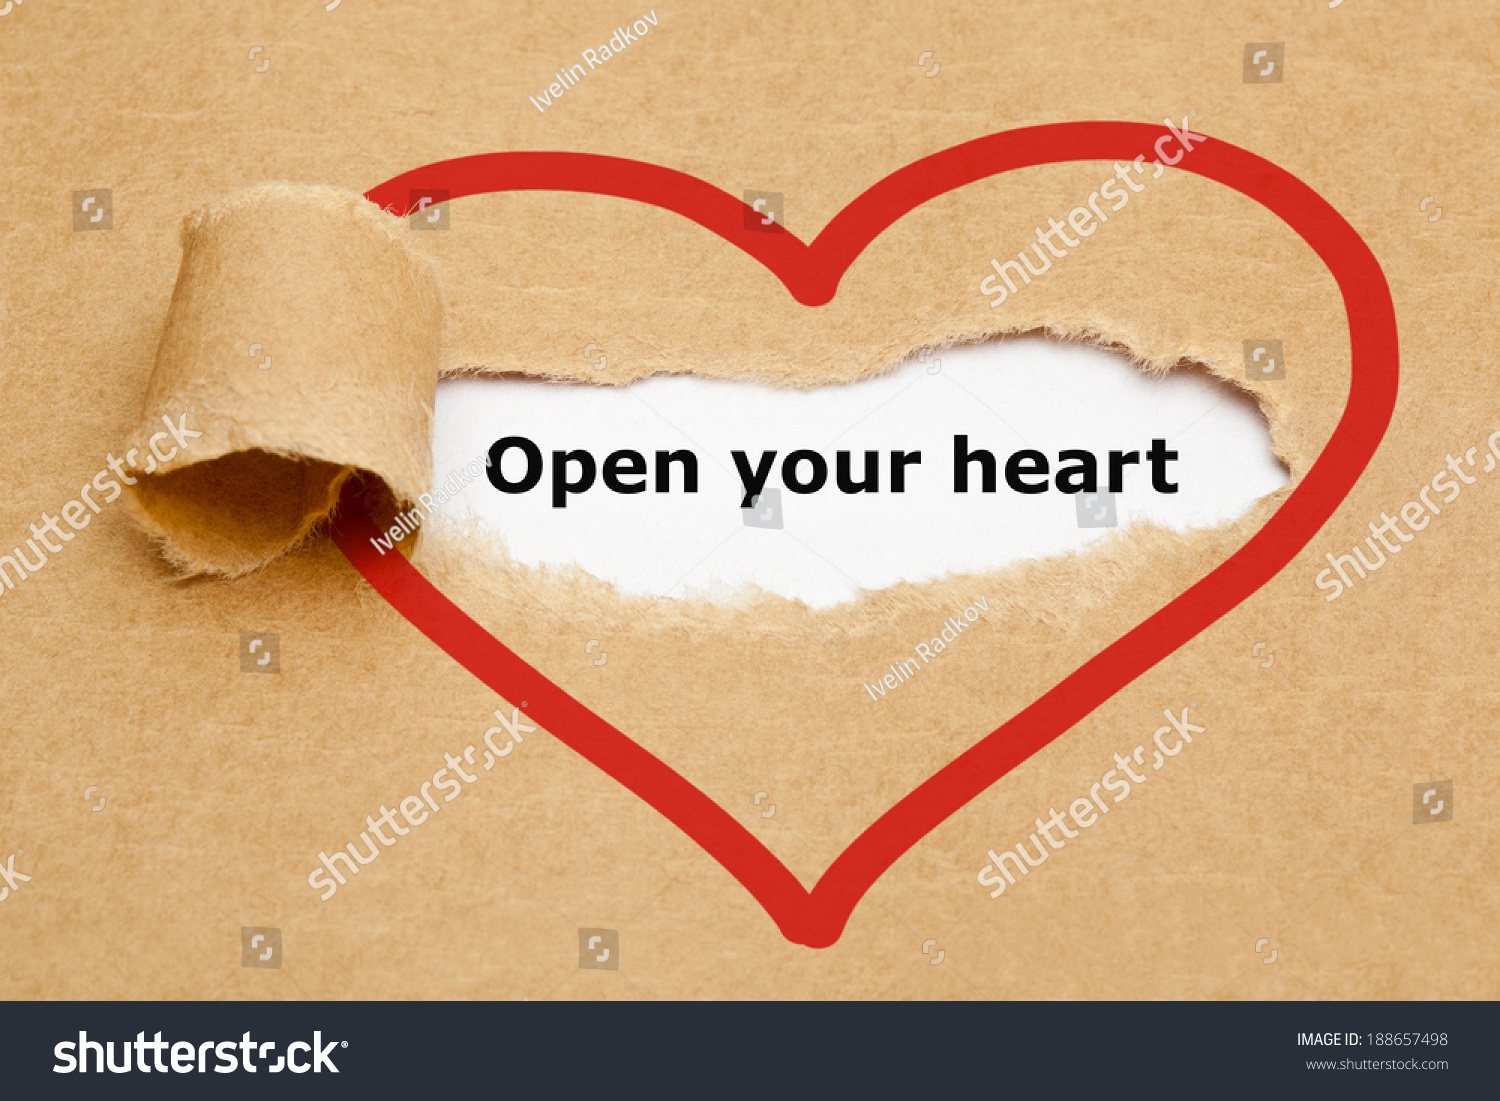 open your heart open your mind essay Is your heart chakra out of balance discover how to open your heart chakra & heal your anahata chakra using these 5 powerful techniques find out now.